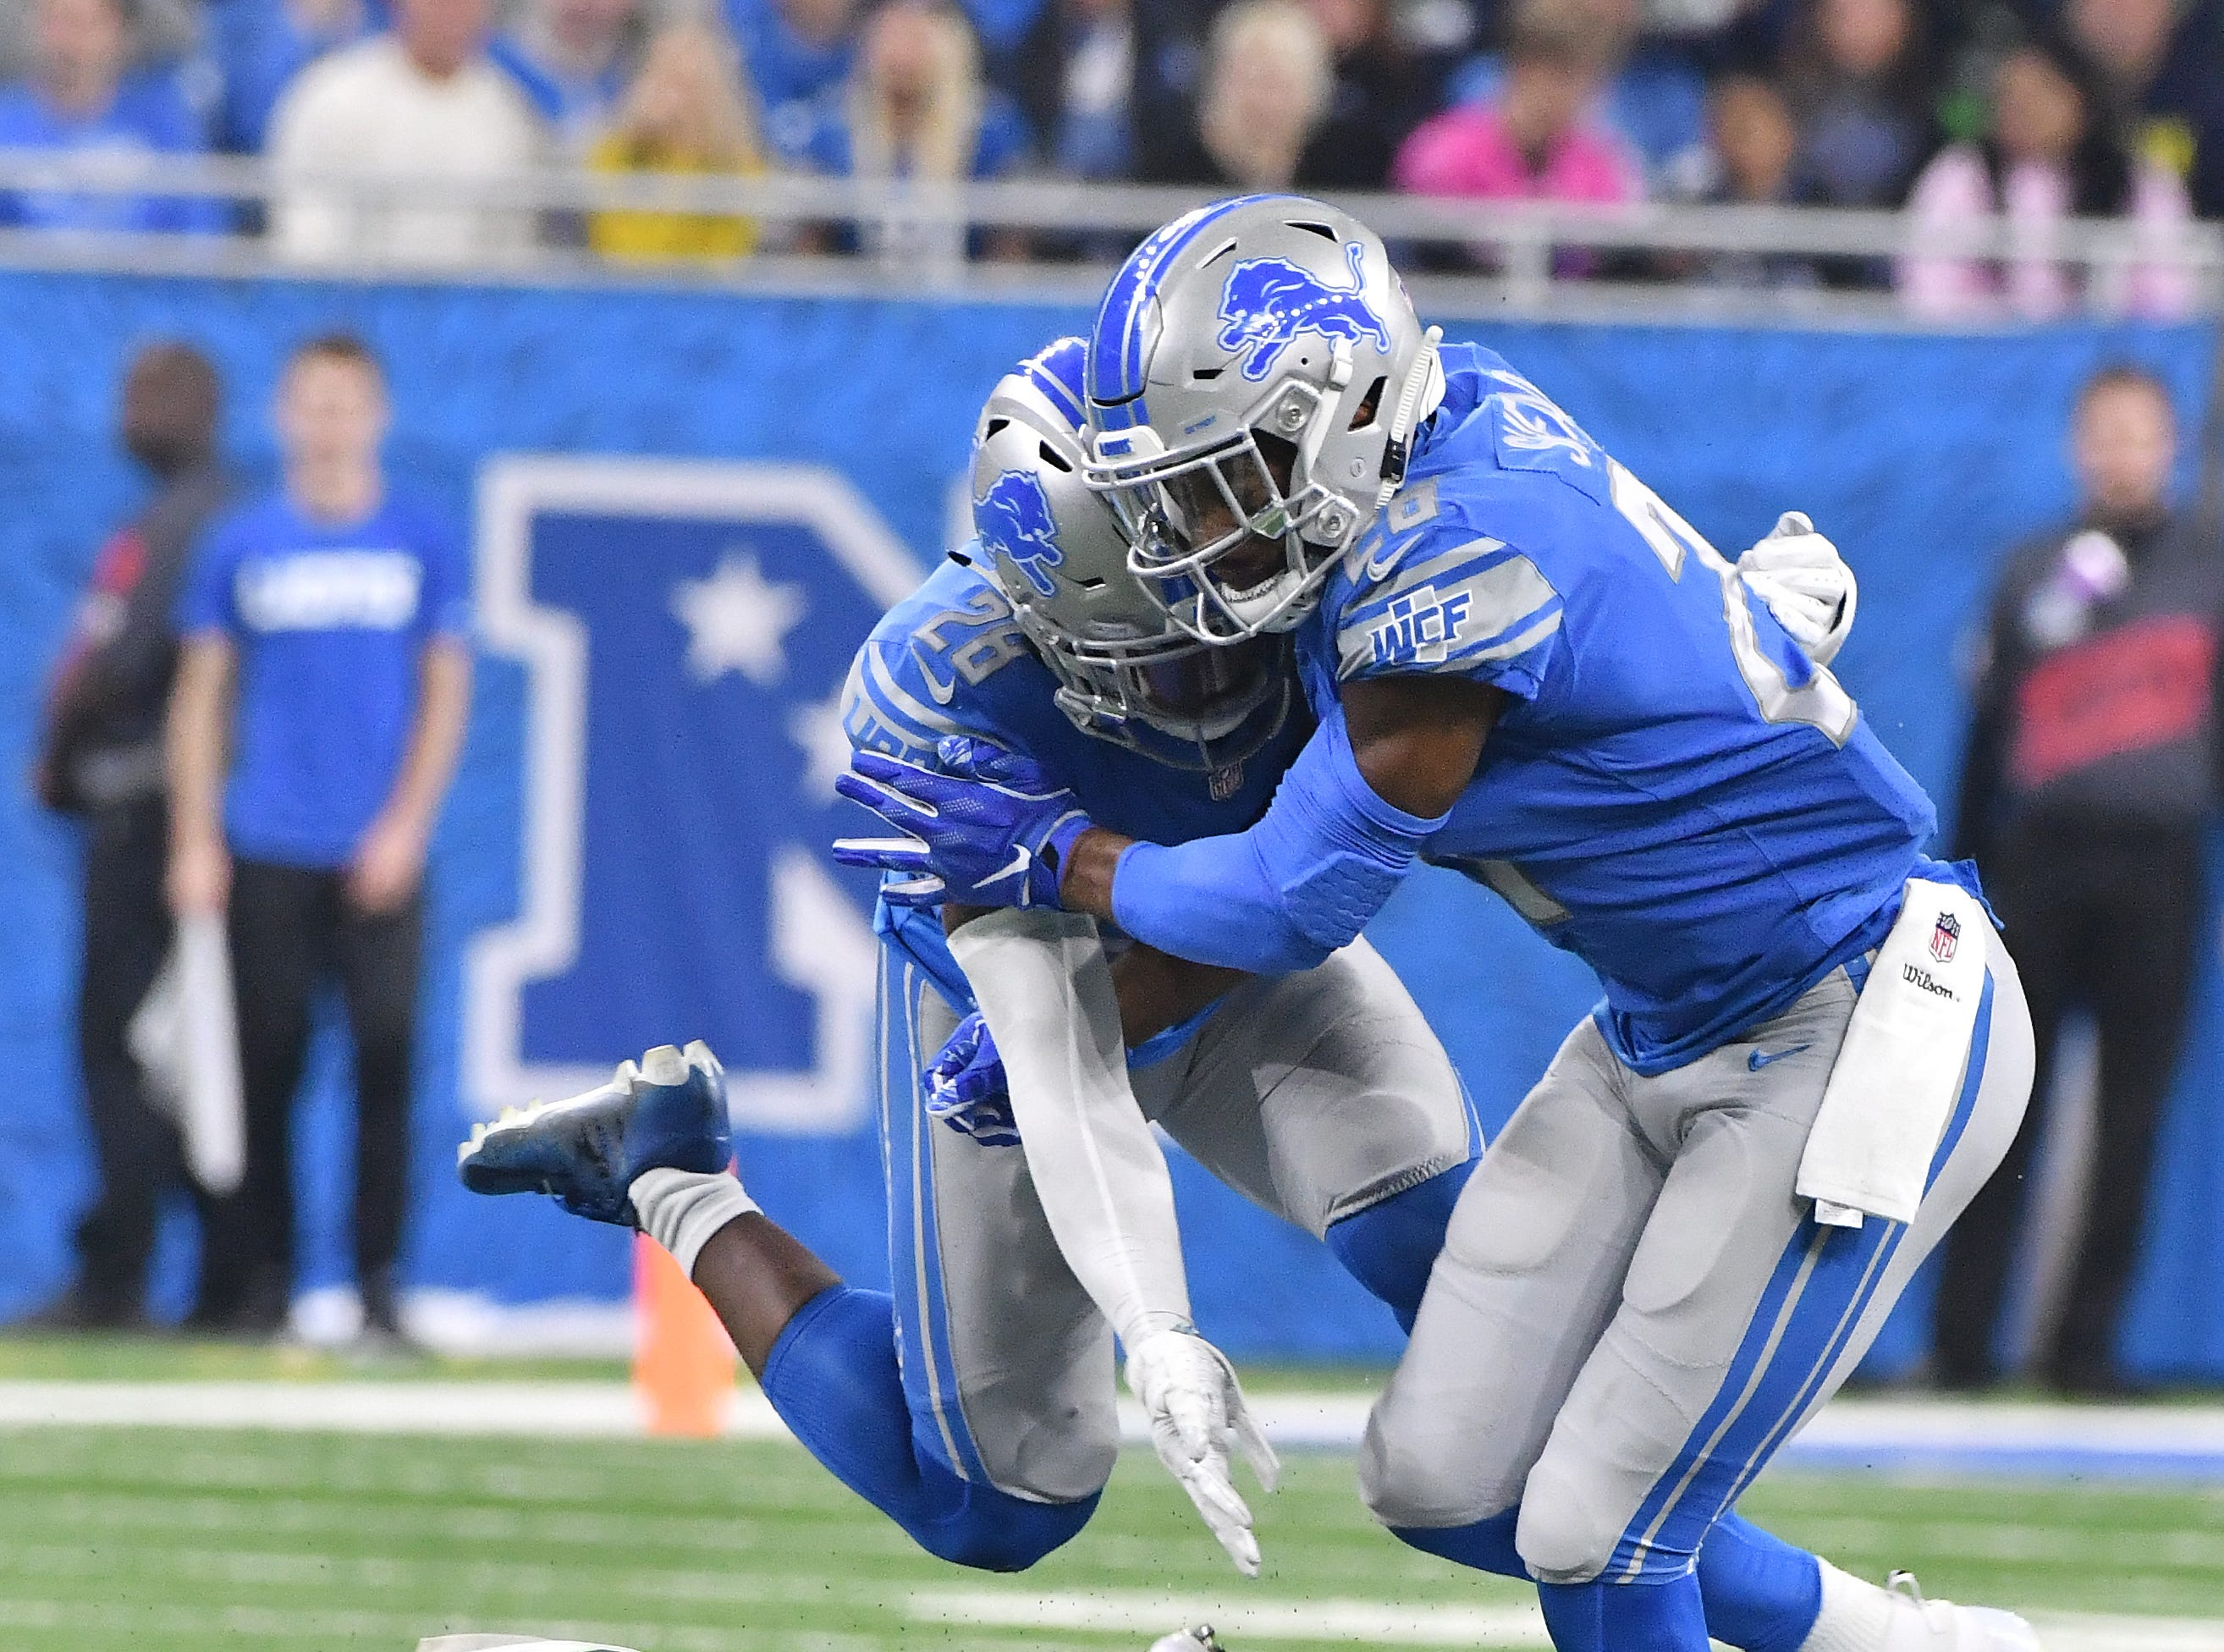 Lions' Quandre Diggs and Nevin Lawson collide into each other on a play that Seattles Nick Vannett did not make a reception but due to a facemark penalty by Detroit, picked up the first down anyways in the fourth quarter.